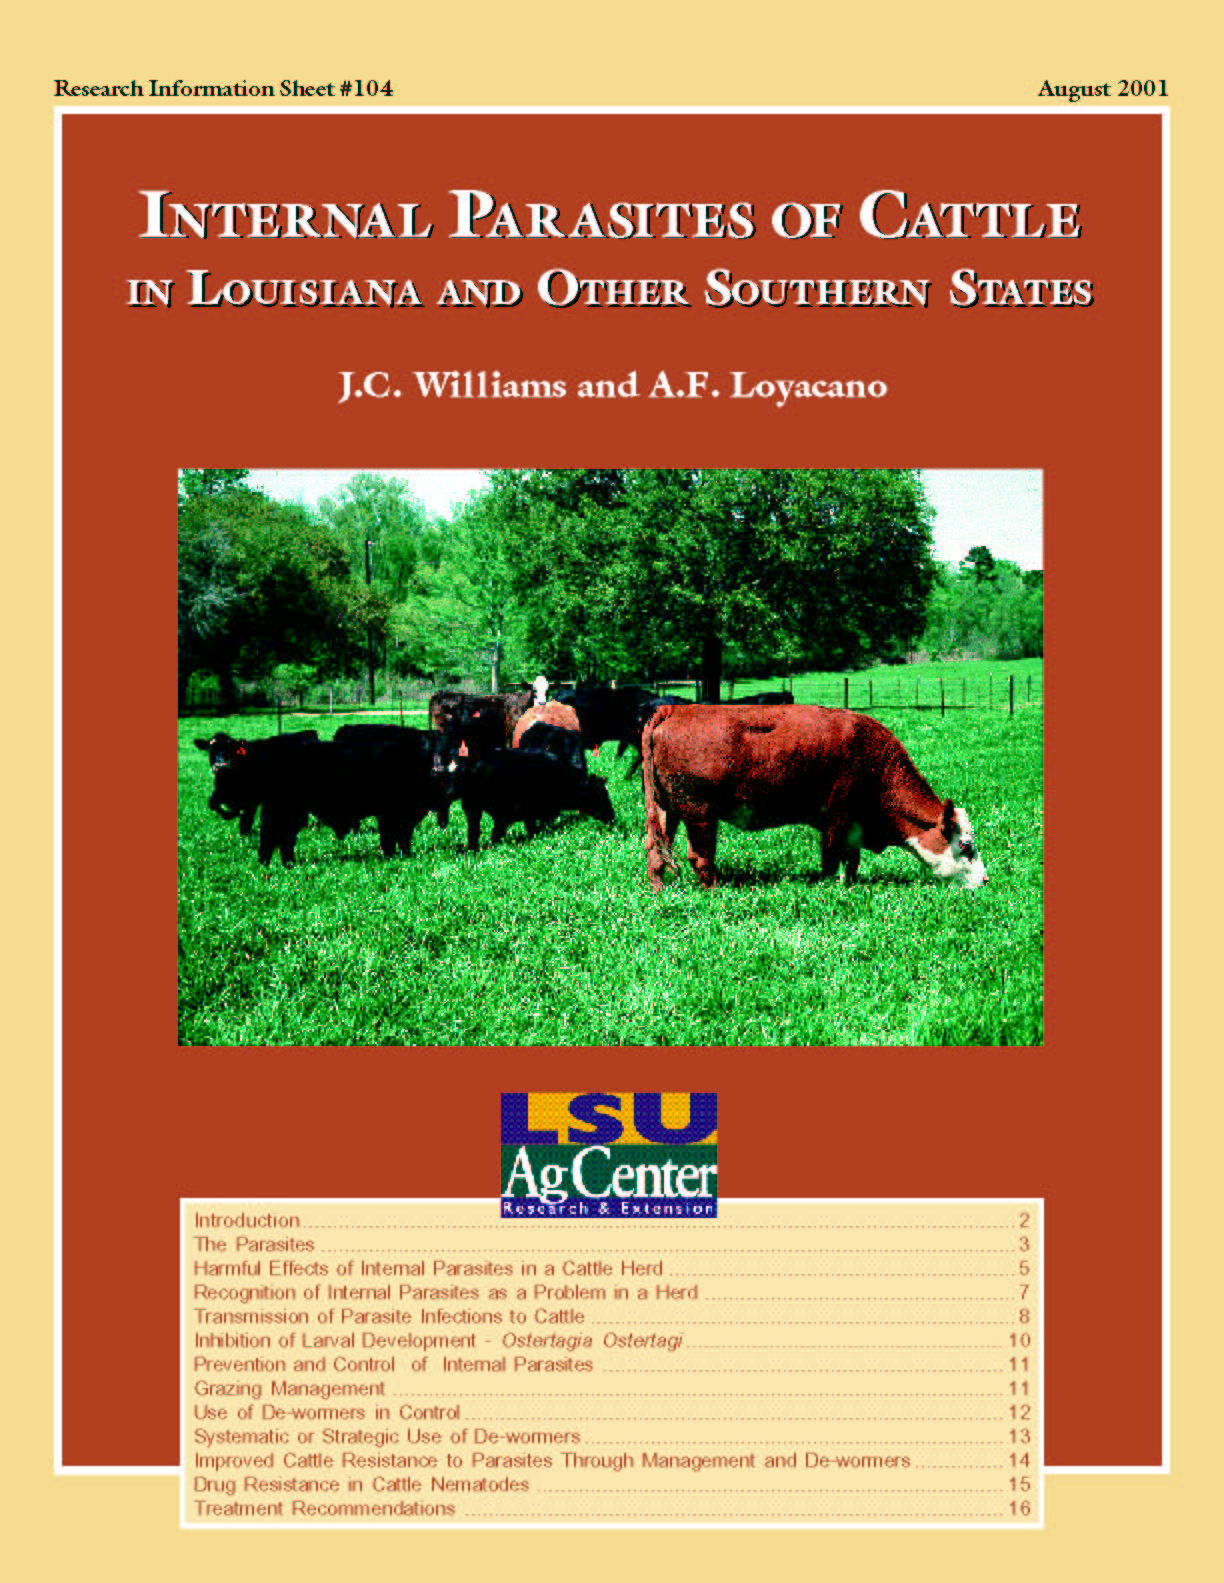 Internal Parasites of Cattle in Louisiana and Other Southern States (August 2001)